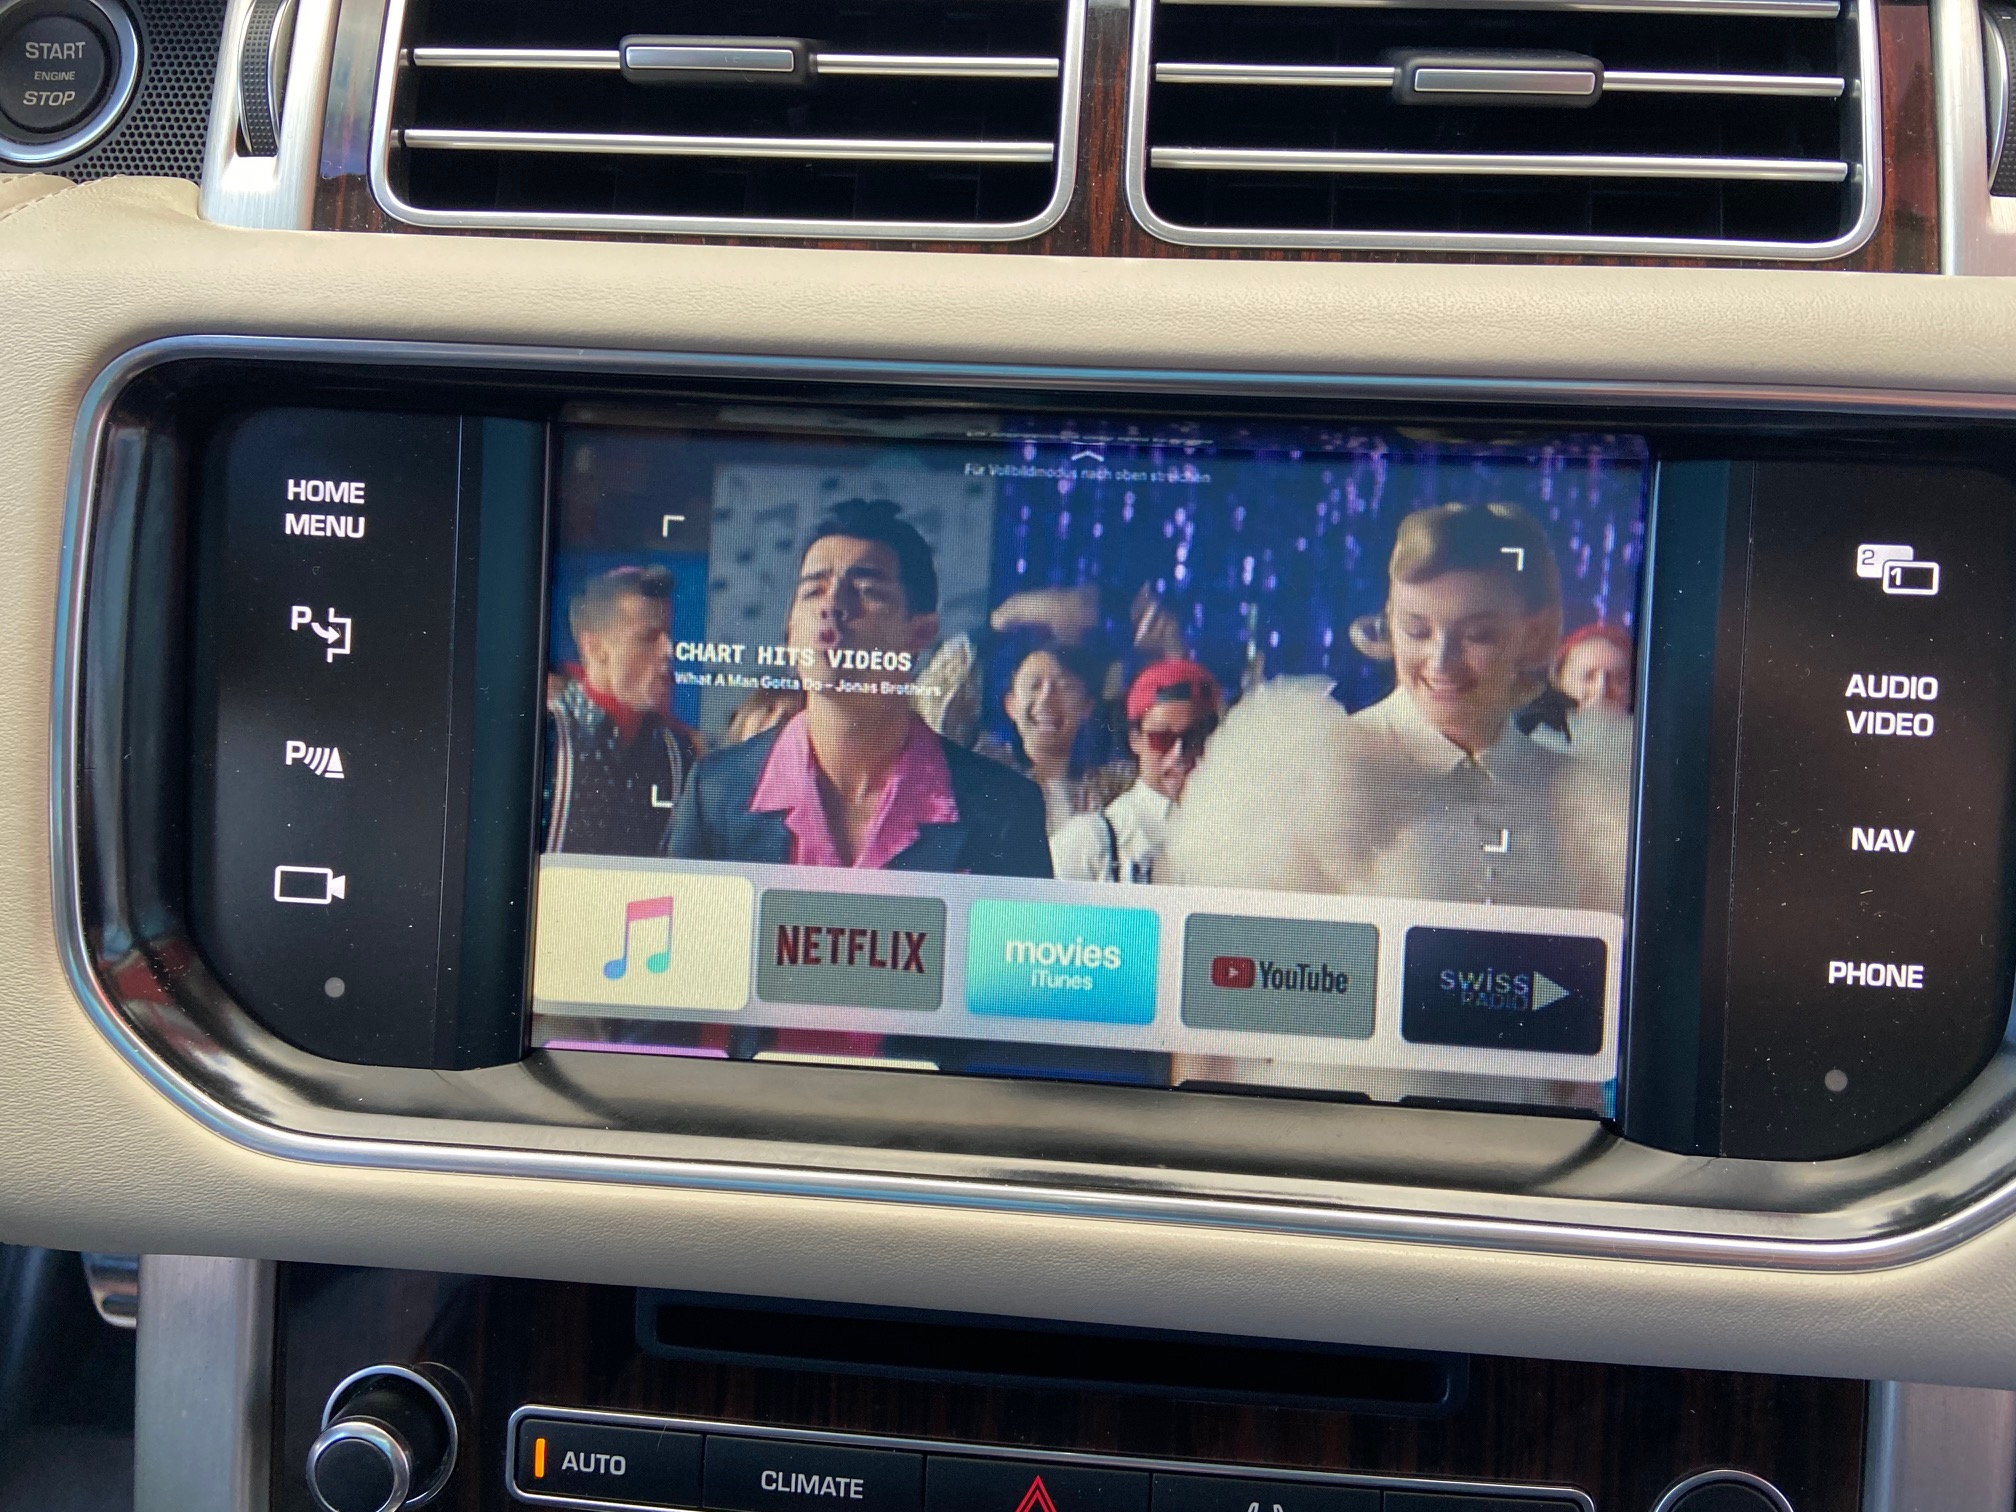 Range-Rover-Apple-TV-Video